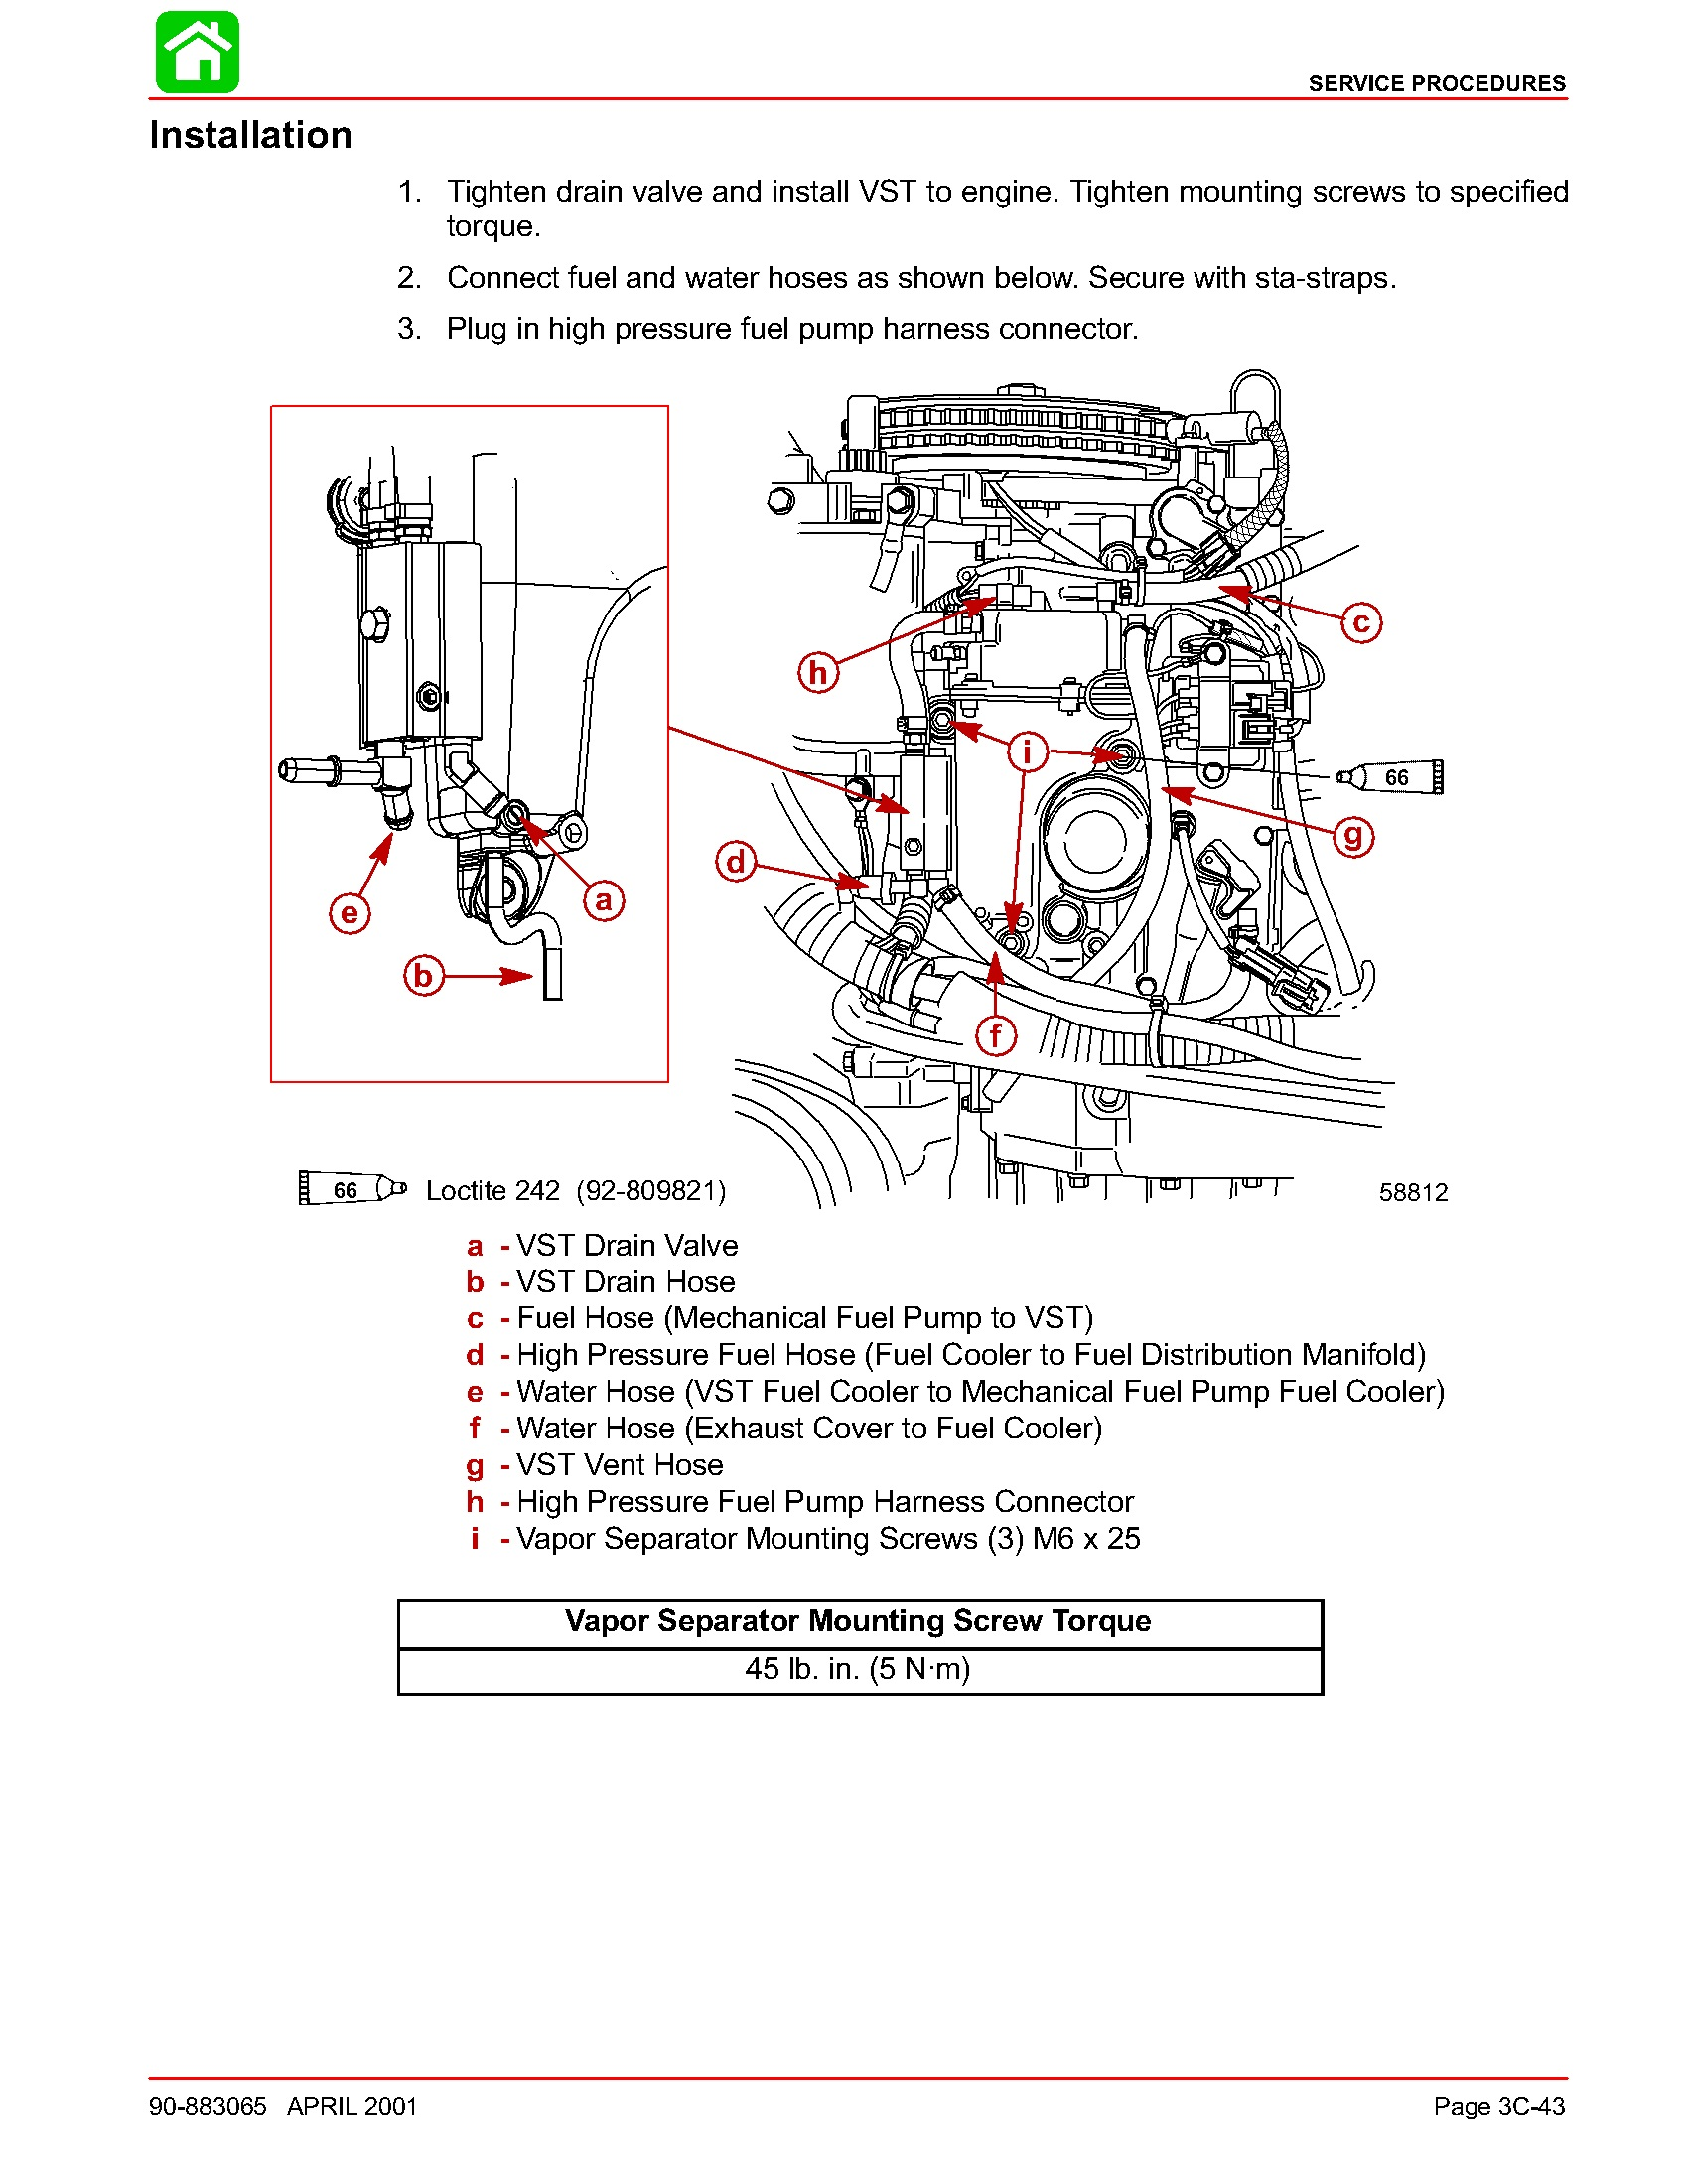 Mercury 60 Efi Wiring Diagram Library. Related Book Pdf Mercury 60 Hp Efi Wiring Diagram Home Los Angeles. Mercury. Diagram 15 Hp Mercury Bigfoot At Scoala.co